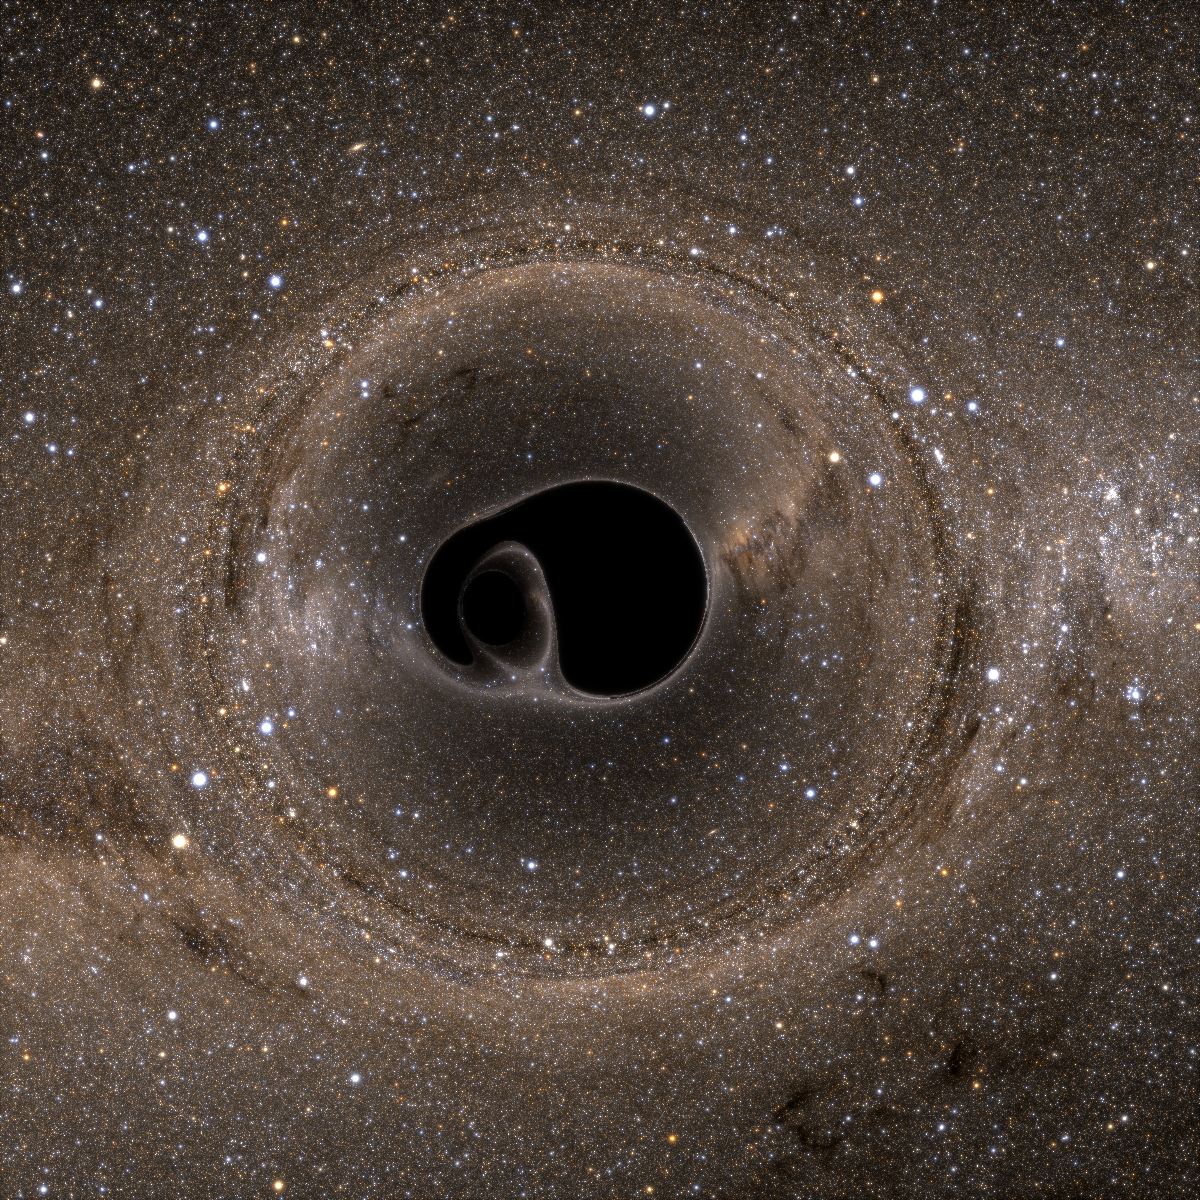 A binary black hole system, viewed edge-on. This pair of extremely dense objects twists and warps spacetime  as the two black holes spiral in toward one another. Image Credit: Bohn, Throwe, Hébert, Henriksson, Bunandar, Taylor, Scheel (see http://www.black-holes.org/lensing)